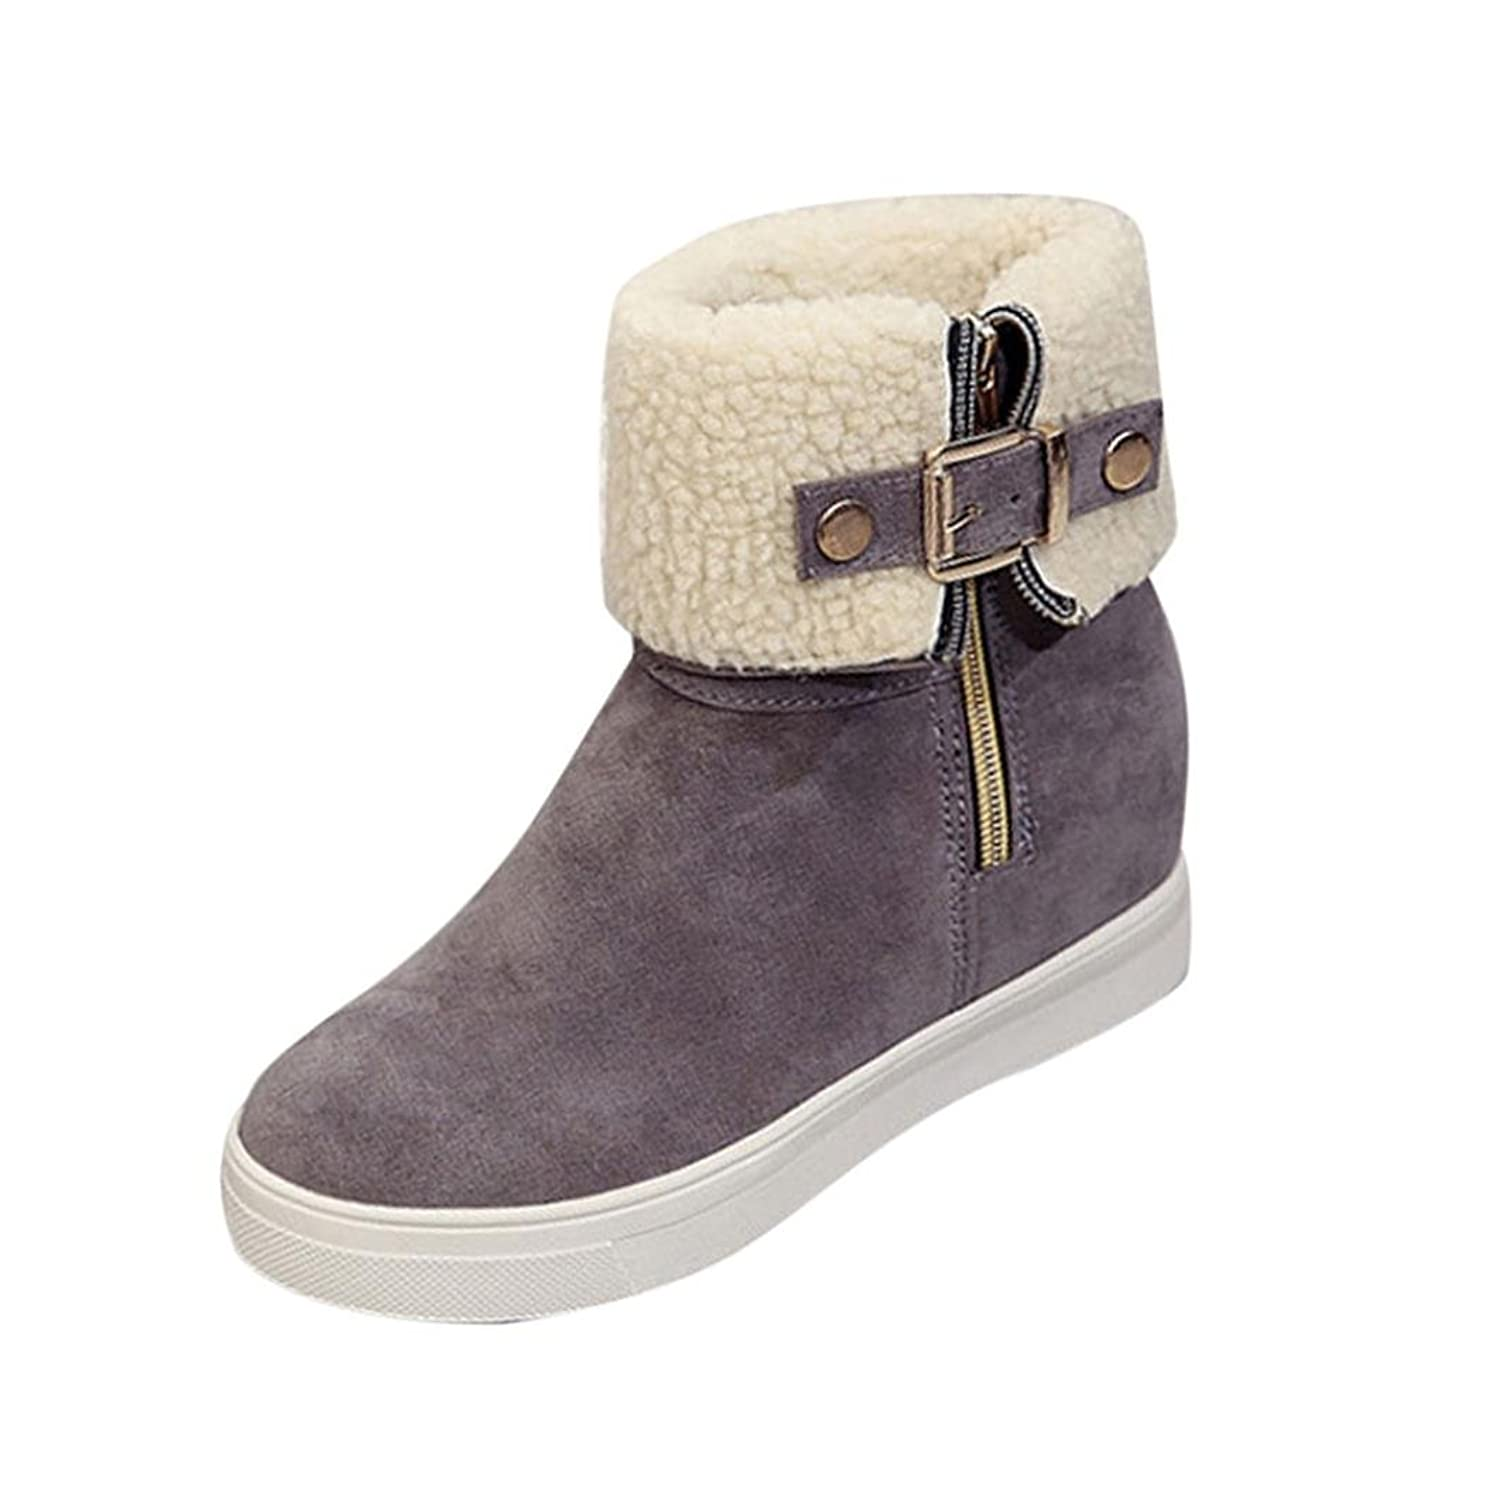 ☆ ▷ ♤ Pretty Fashion Women Winter Warm Snow Flat Boots